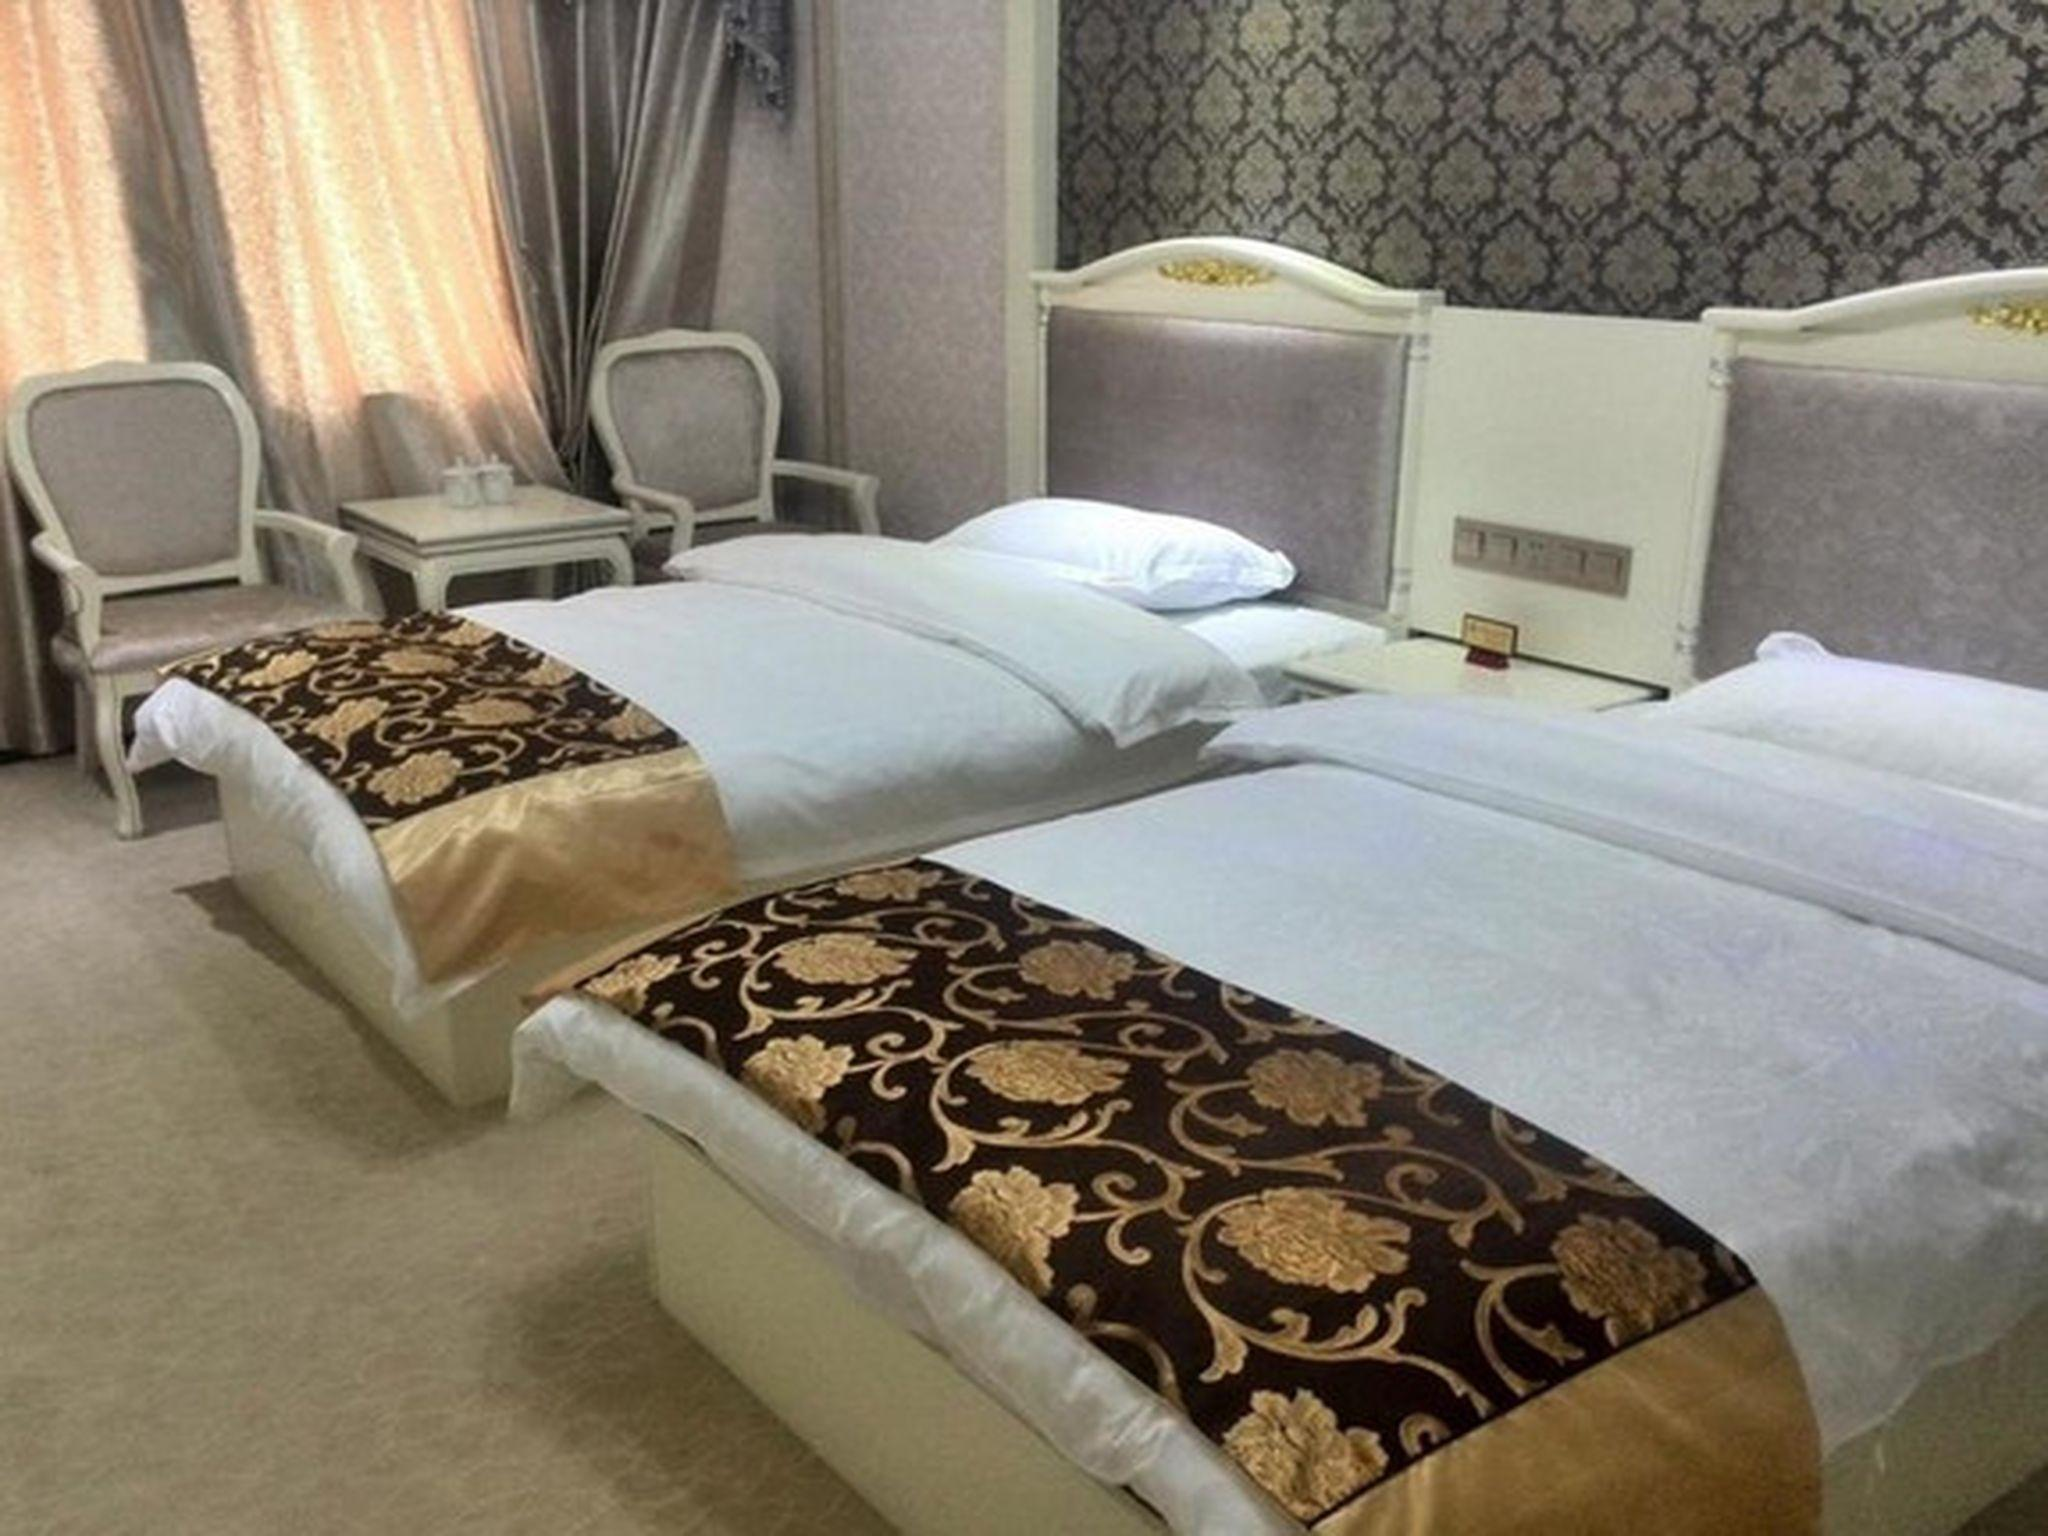 Penawaran Istimewa - Kamar Queen atau Twin (Special Offer - Queen or Twin Room)